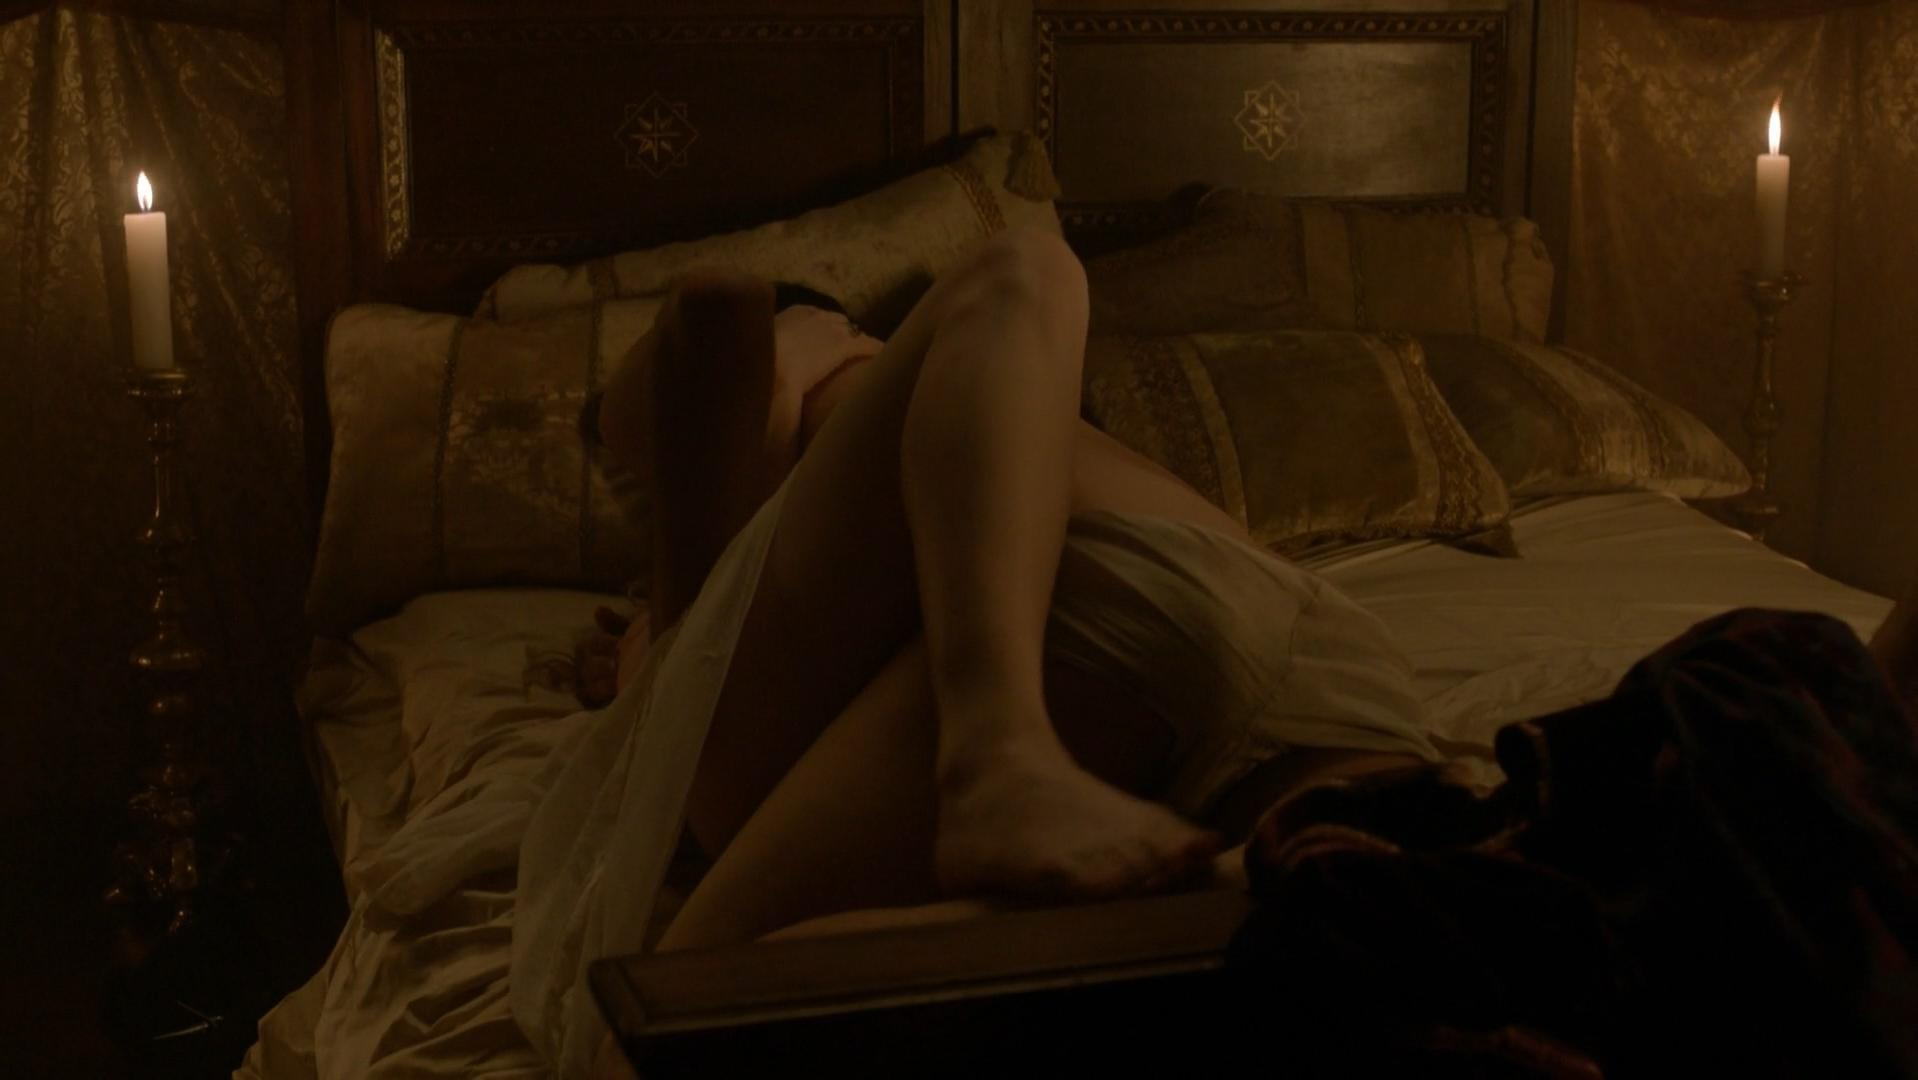 Holliday Grainger nude - The Borgias s02e02 (2012)